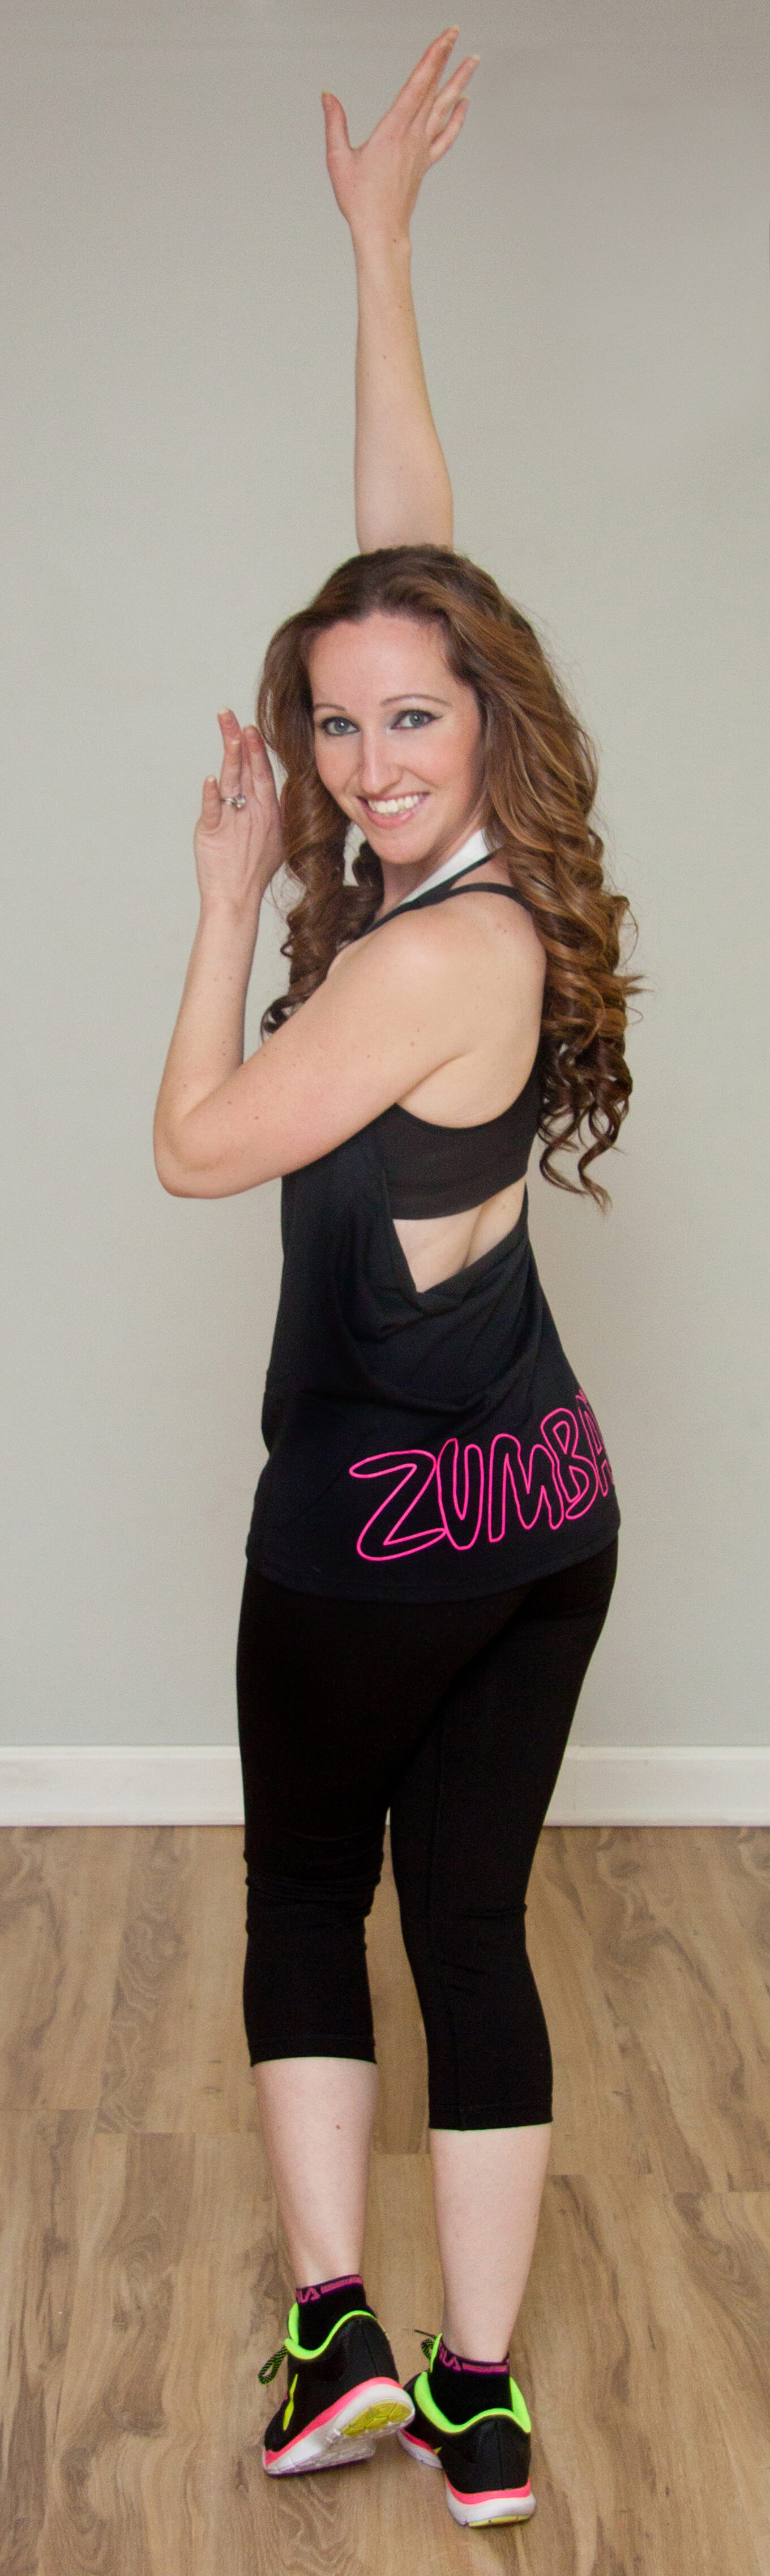 Donna performing a cha-cha Zumba move